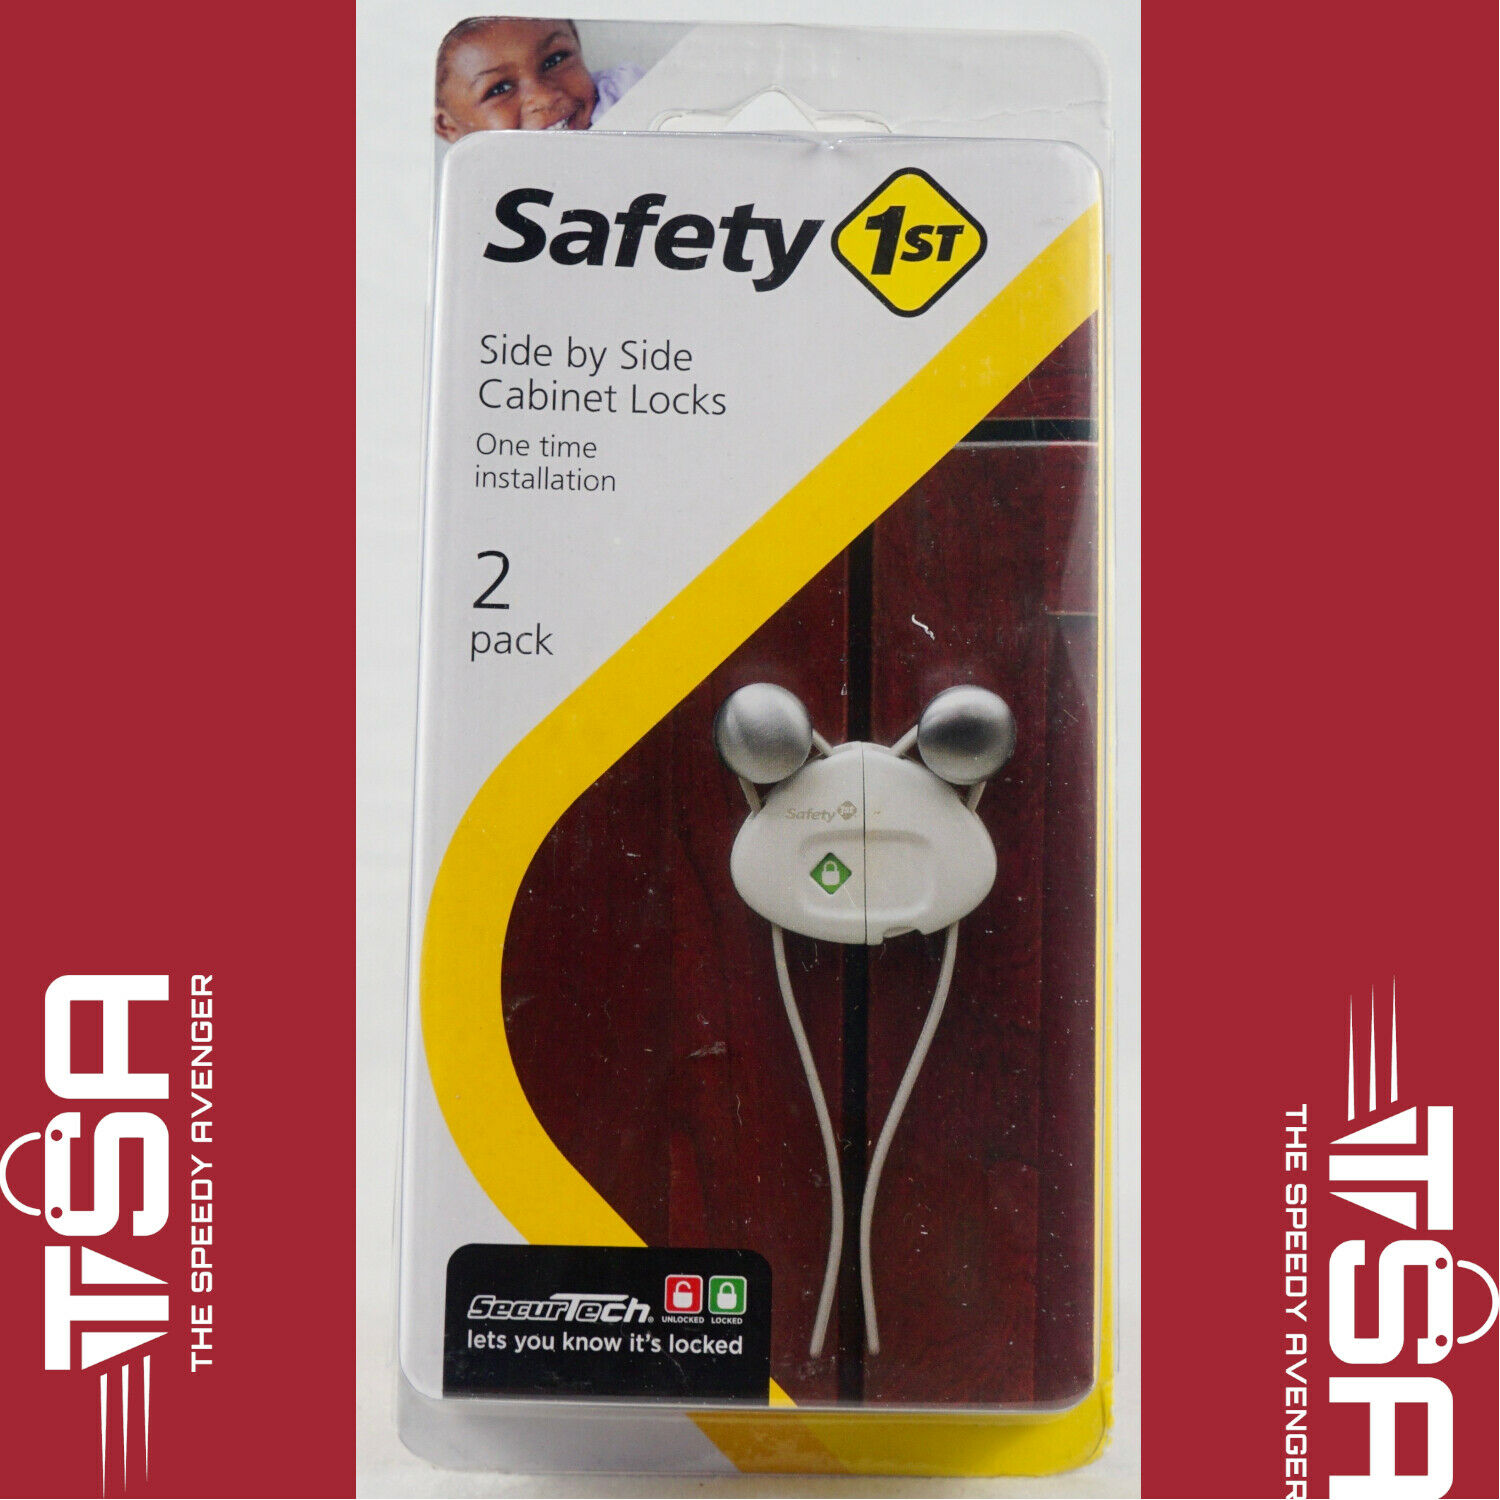 Safety 1st Cabinet Lock White Clamshell 2 / Pack - $10.90